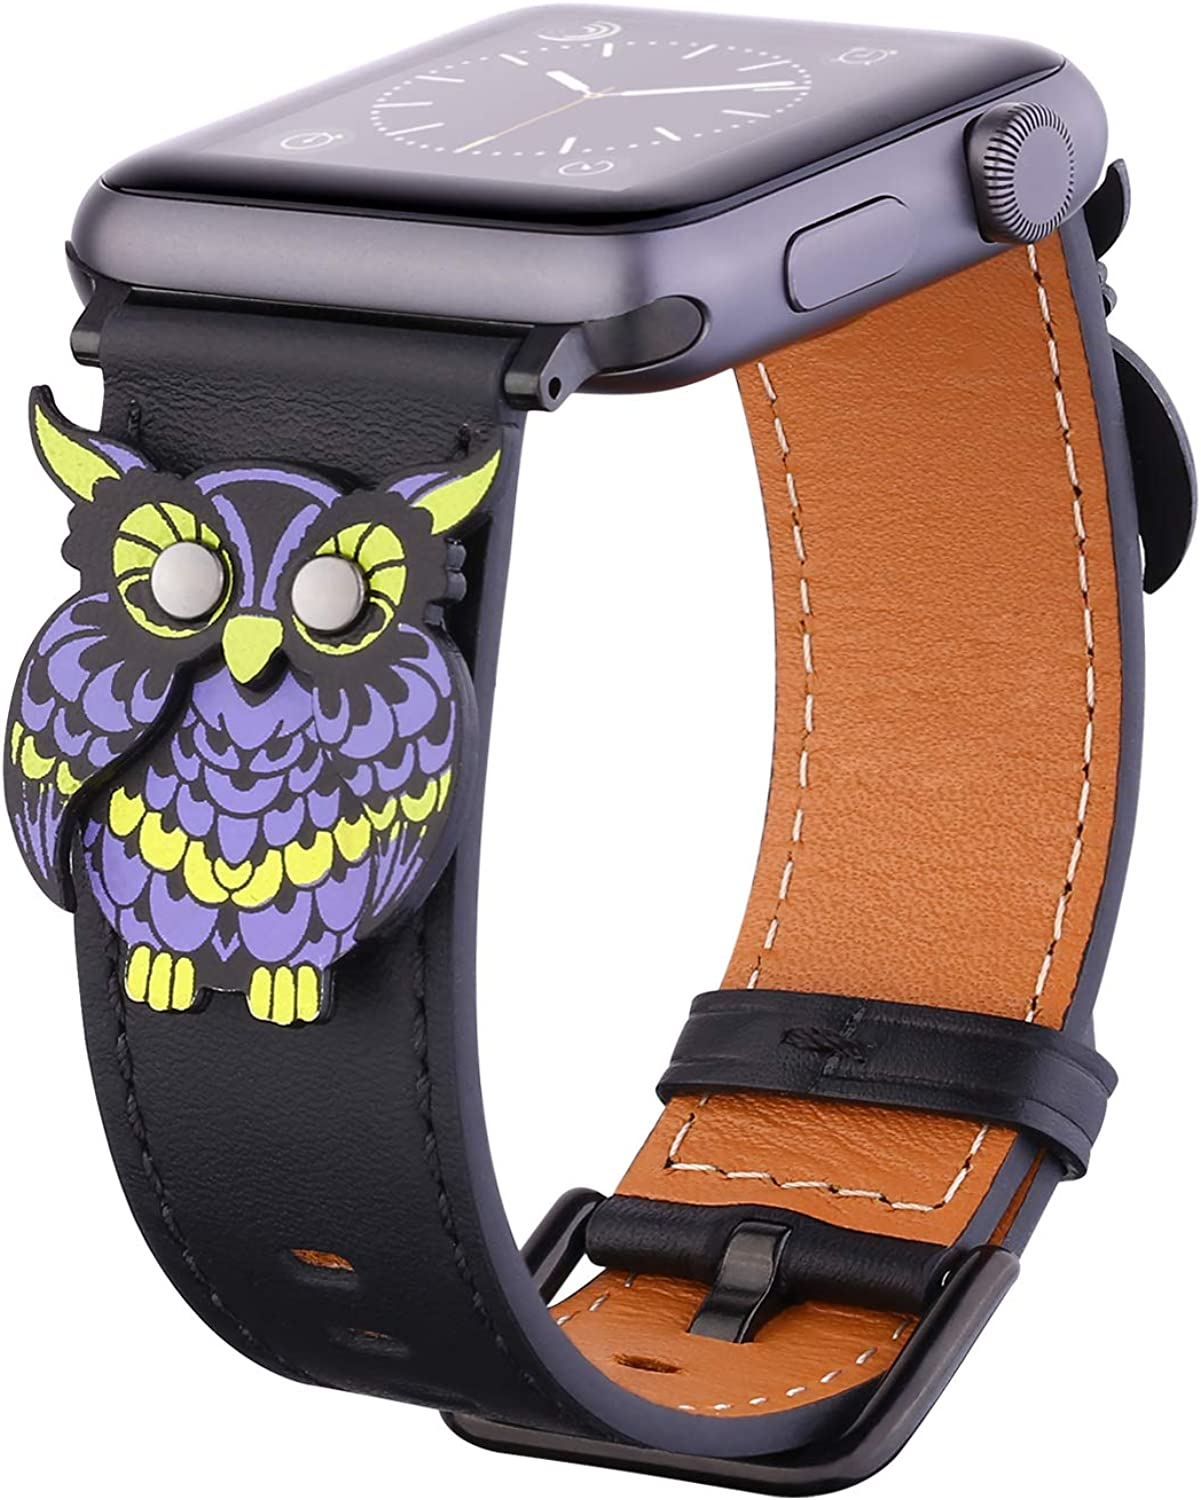 Handmade Owl Leather Watch Band Compatible with Apple Watch 38mm 40mm Design Watchband for iwatch Series 4/3/2/1 Replacement Strap Wristband for Women Men